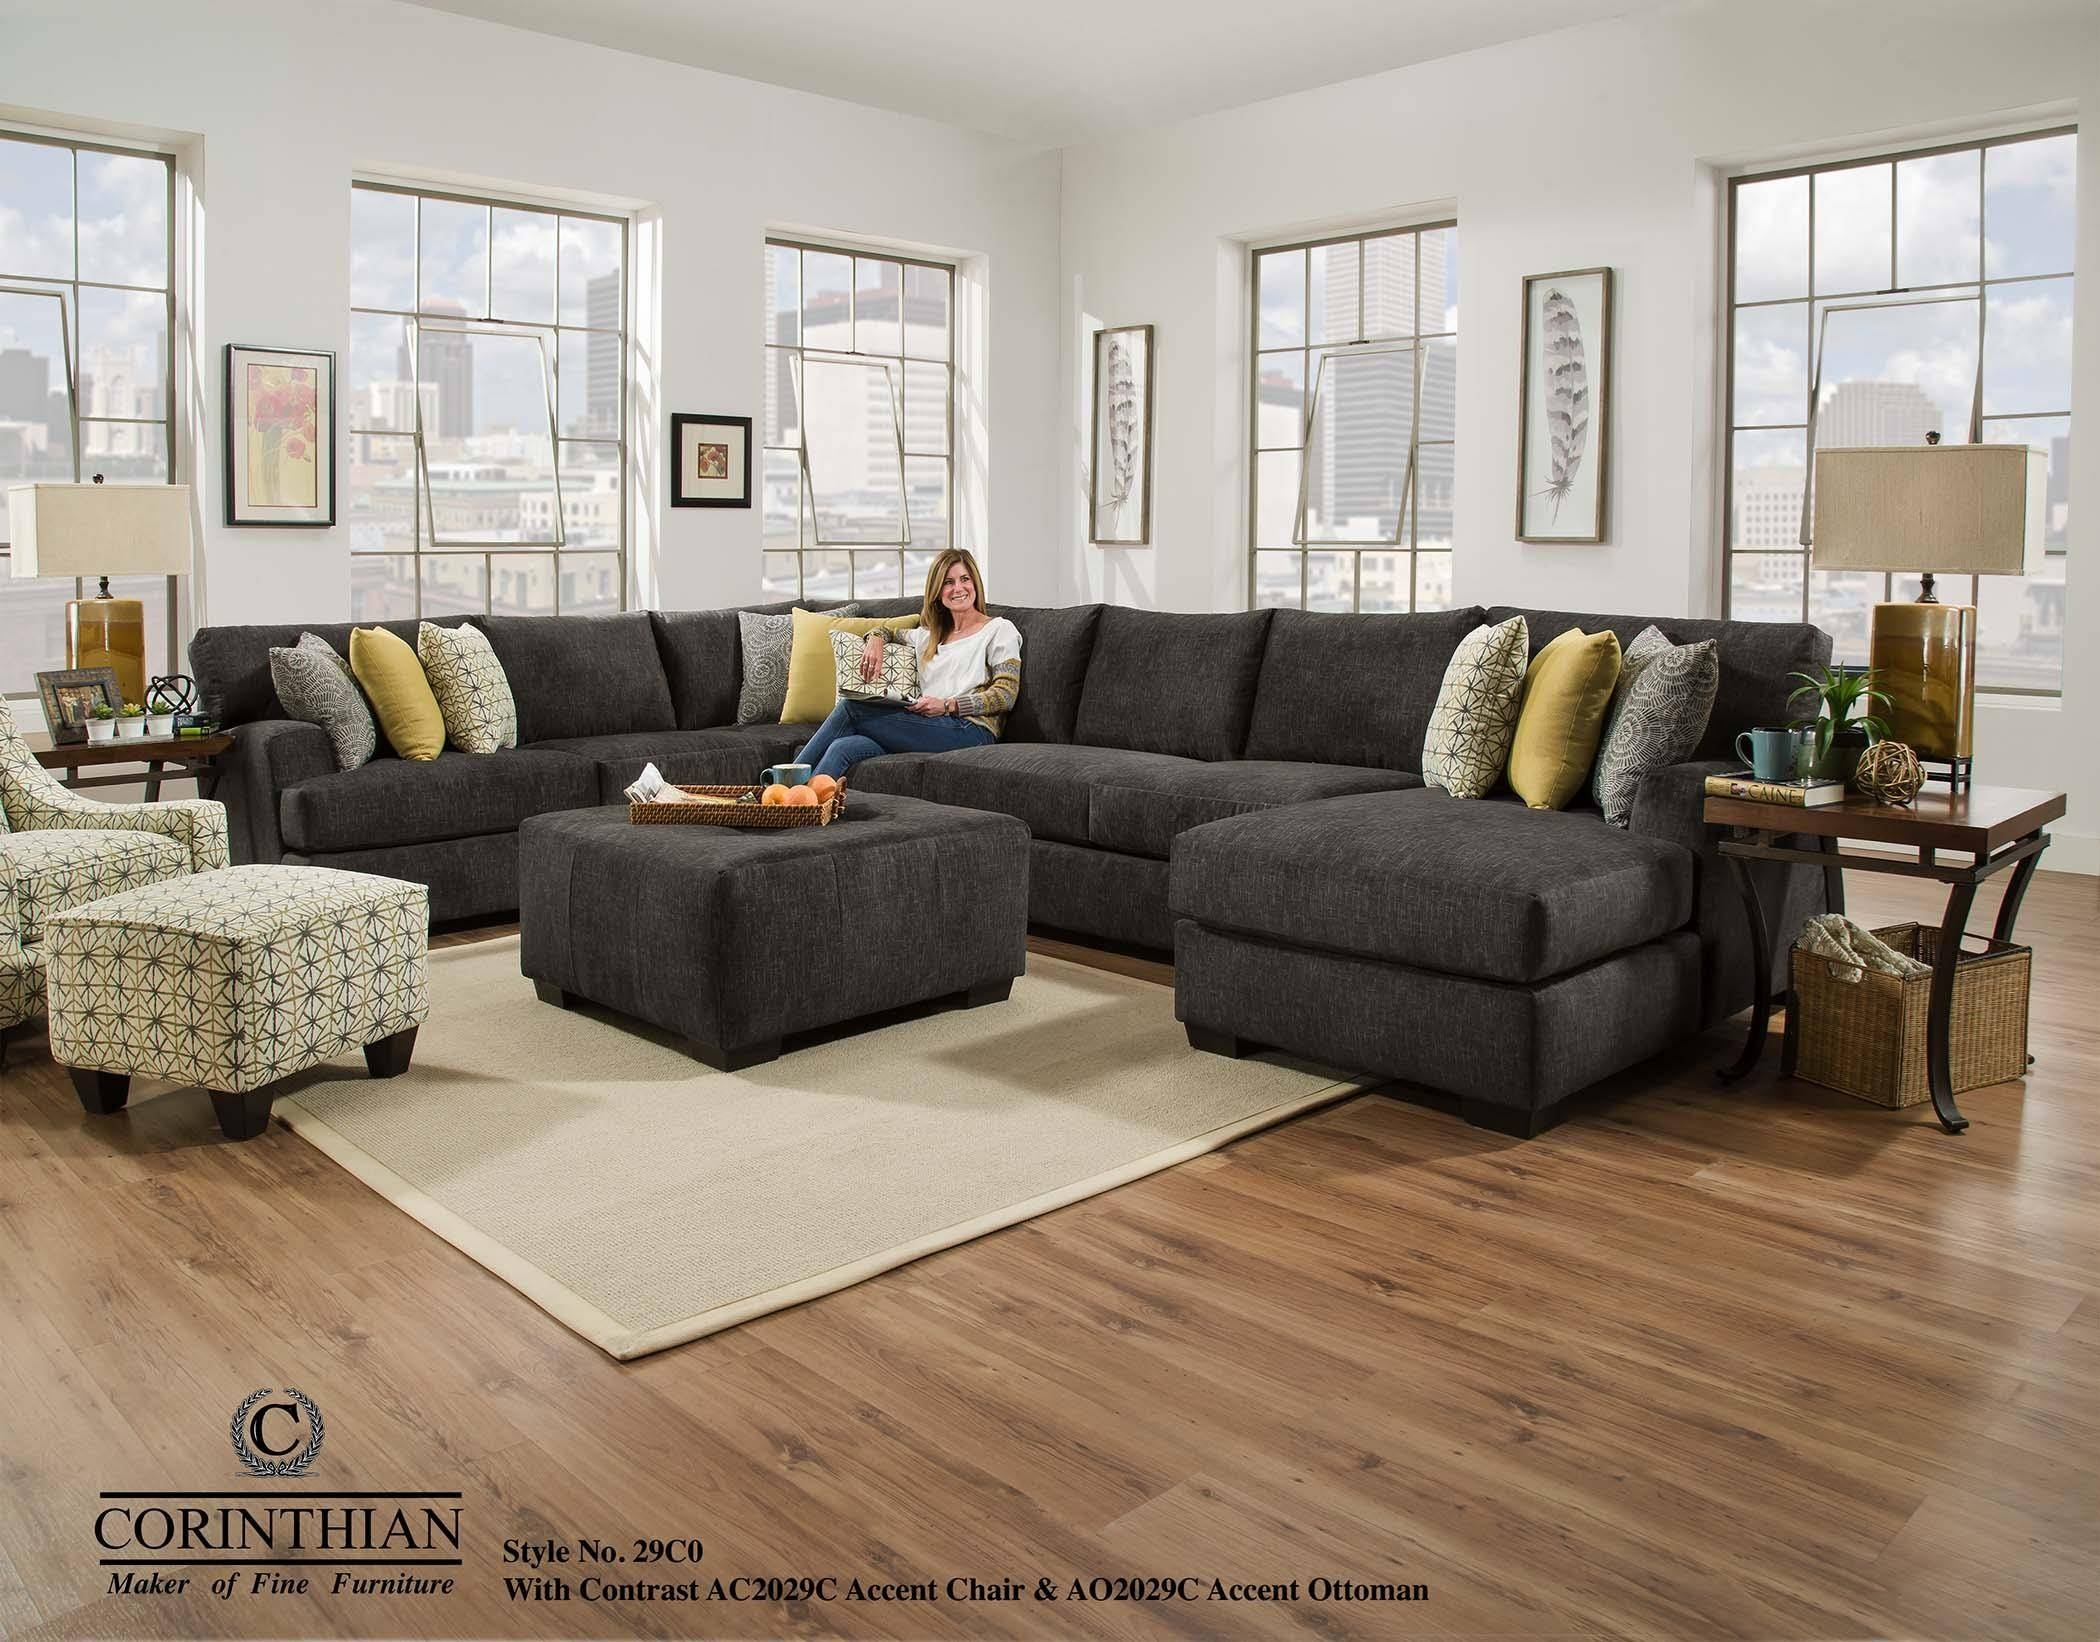 Corinthian Alton Alton 4 Piece Sectional With Rsf Chaise - Great regarding Corinthian Sectional Sofas (Image 11 of 30)